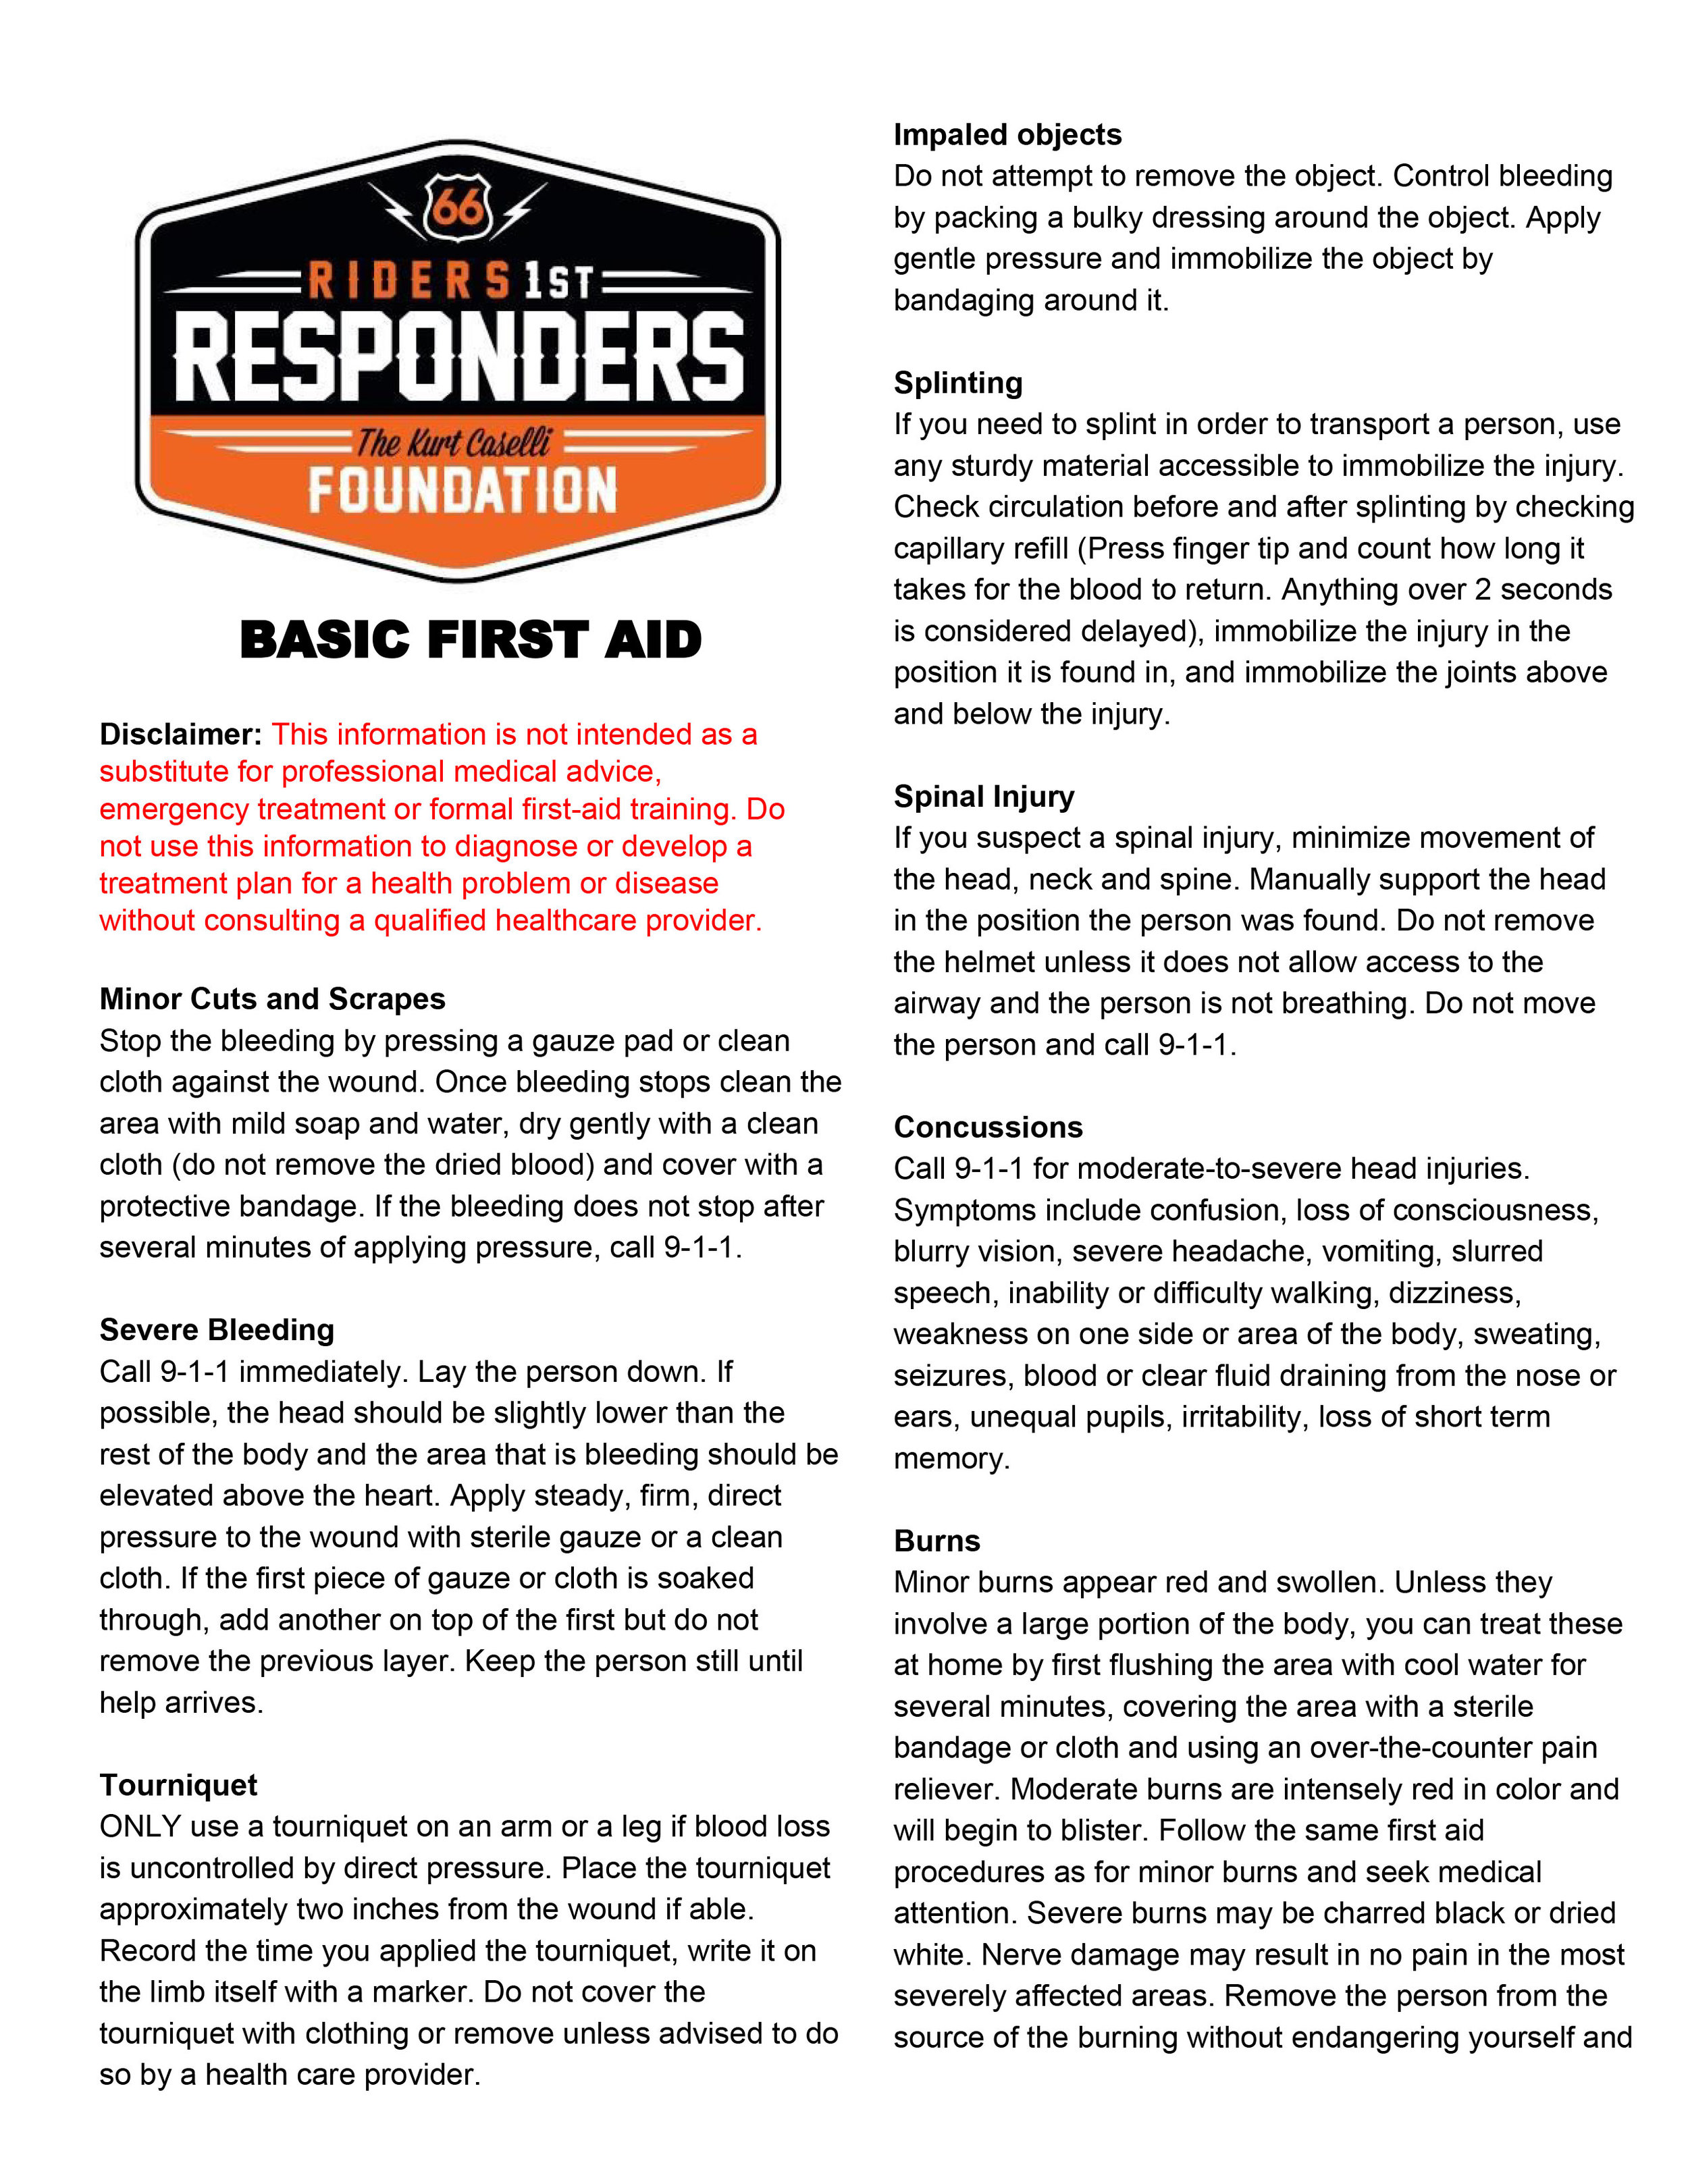 KCF-Basic-First-Aid-Page1of3.jpg